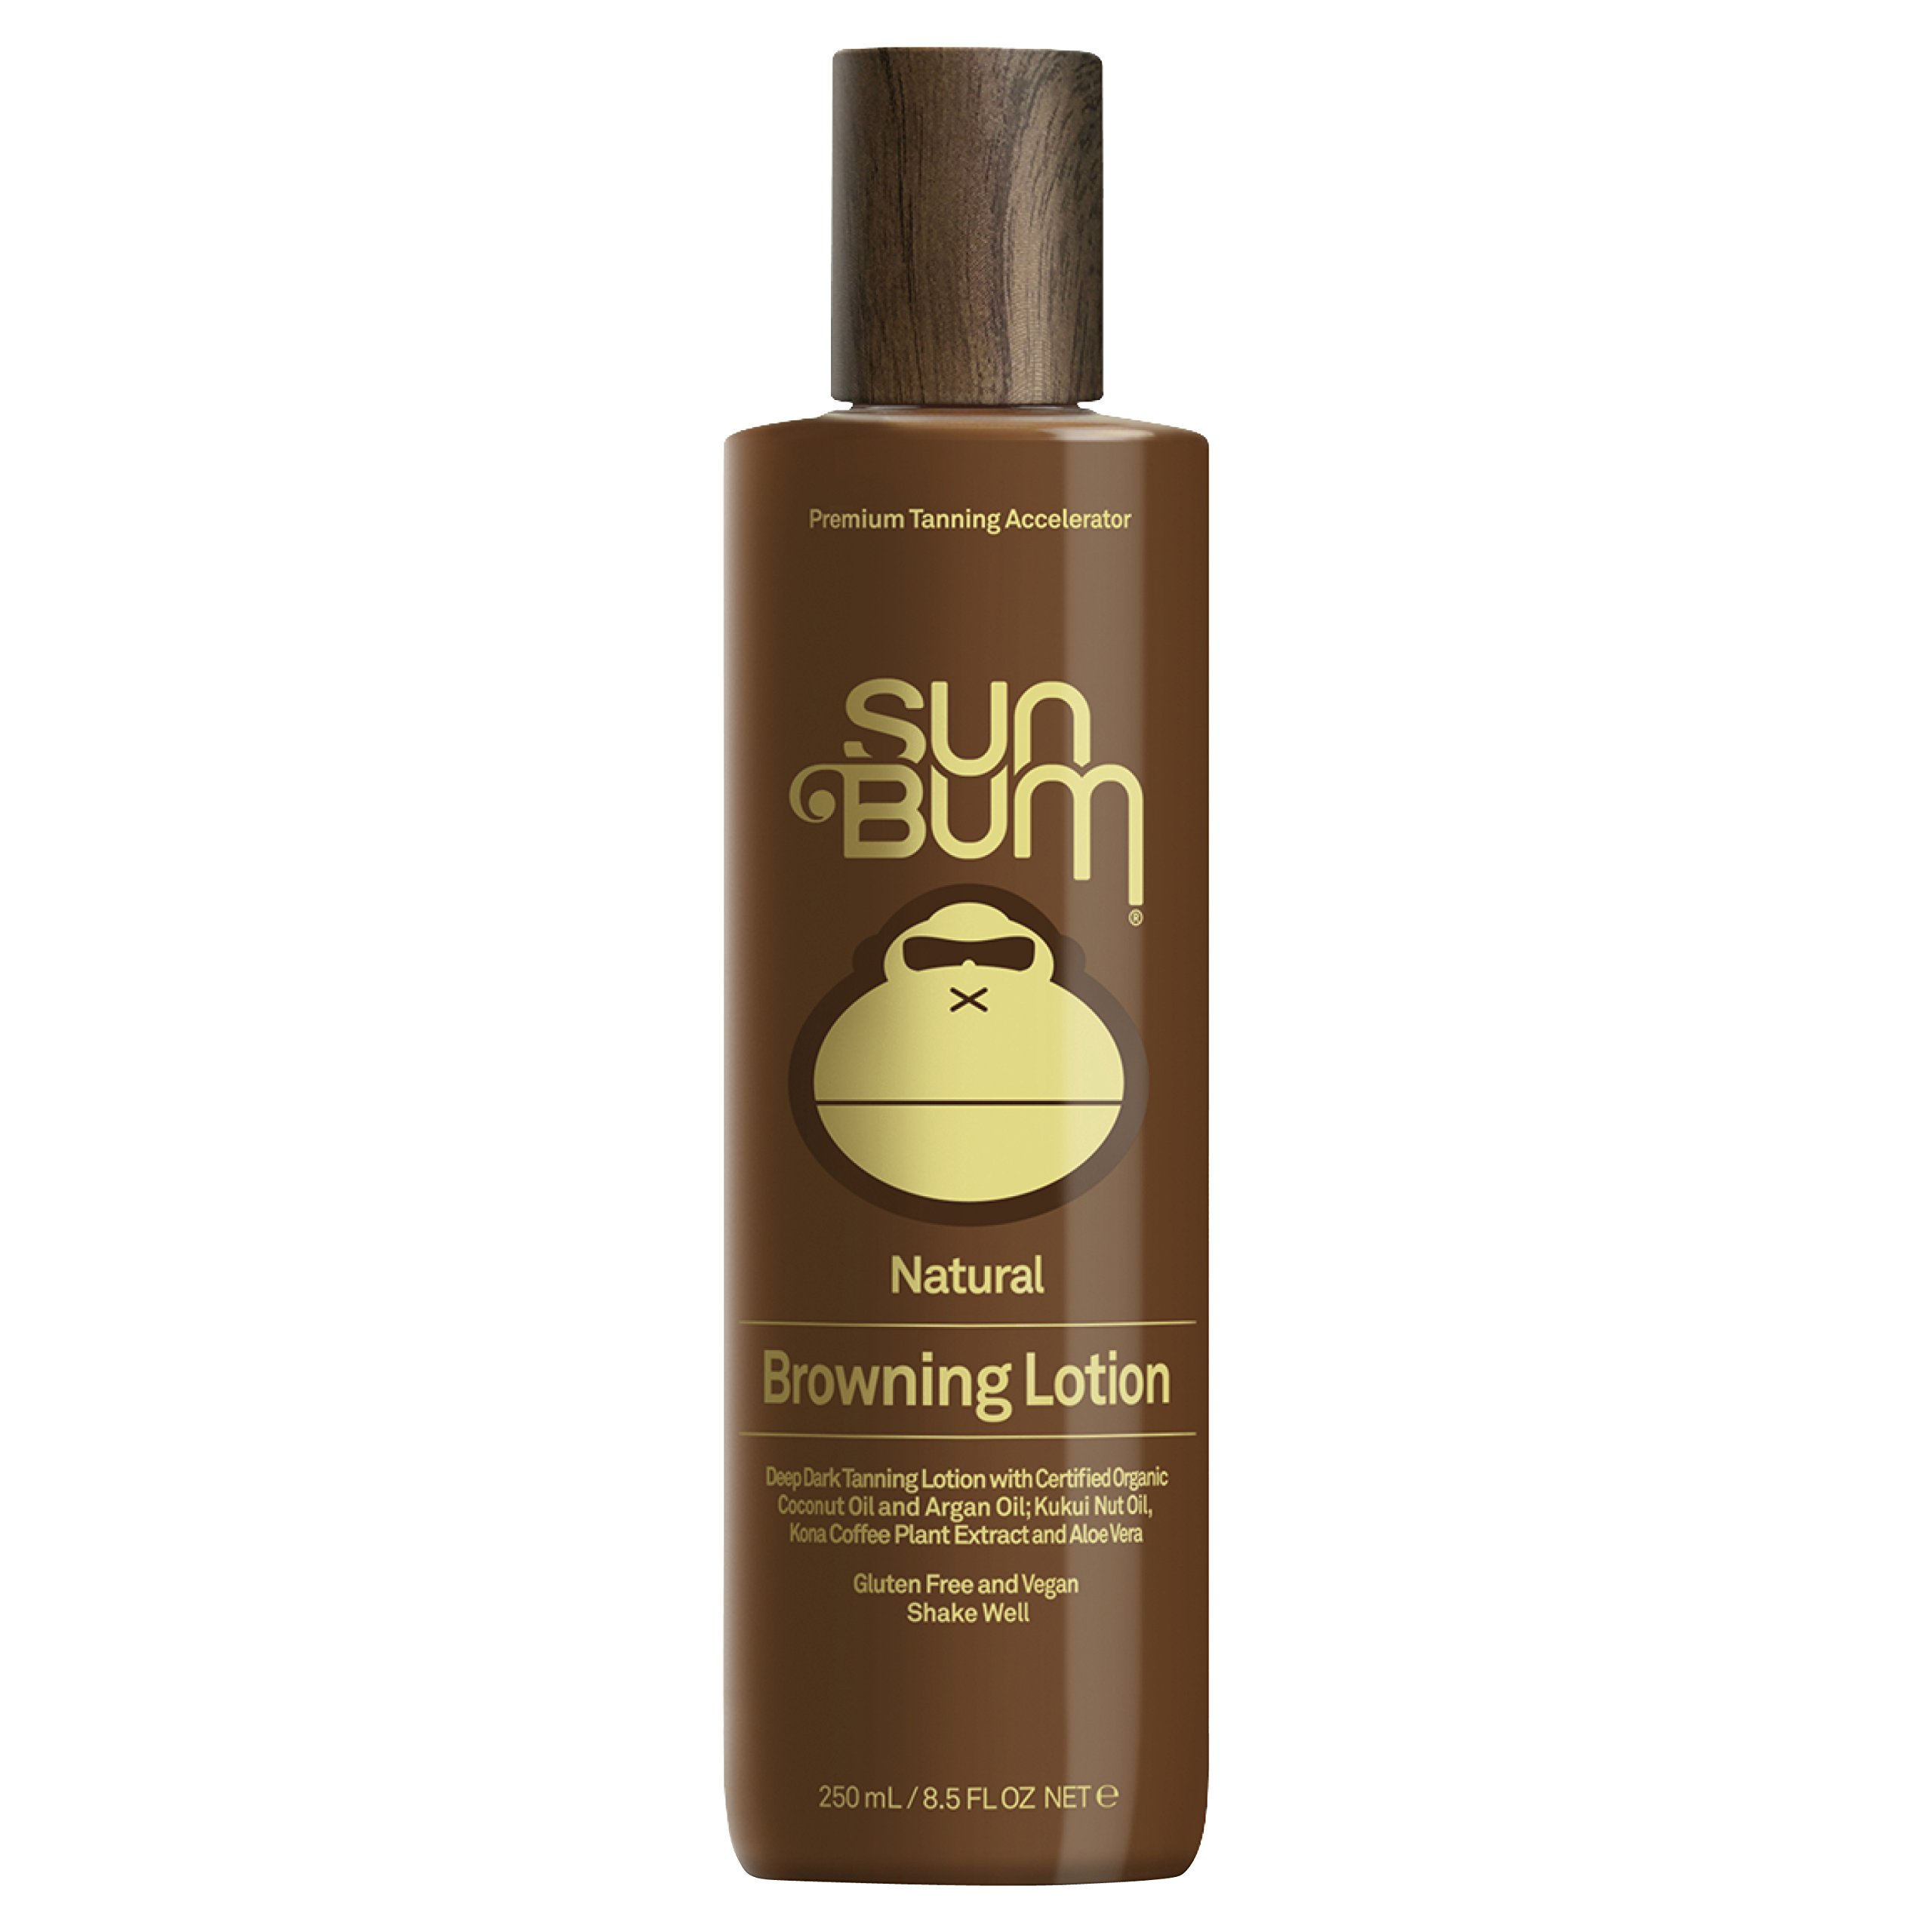 Sun Bum Natural Browning Lotion | Dark Tanning Lotion with Organic Coconut Oil, Kona Coffee Extract and Aloe Vera | Gluten Free and Vegan | 8.5 FL Oz by Sun Bum